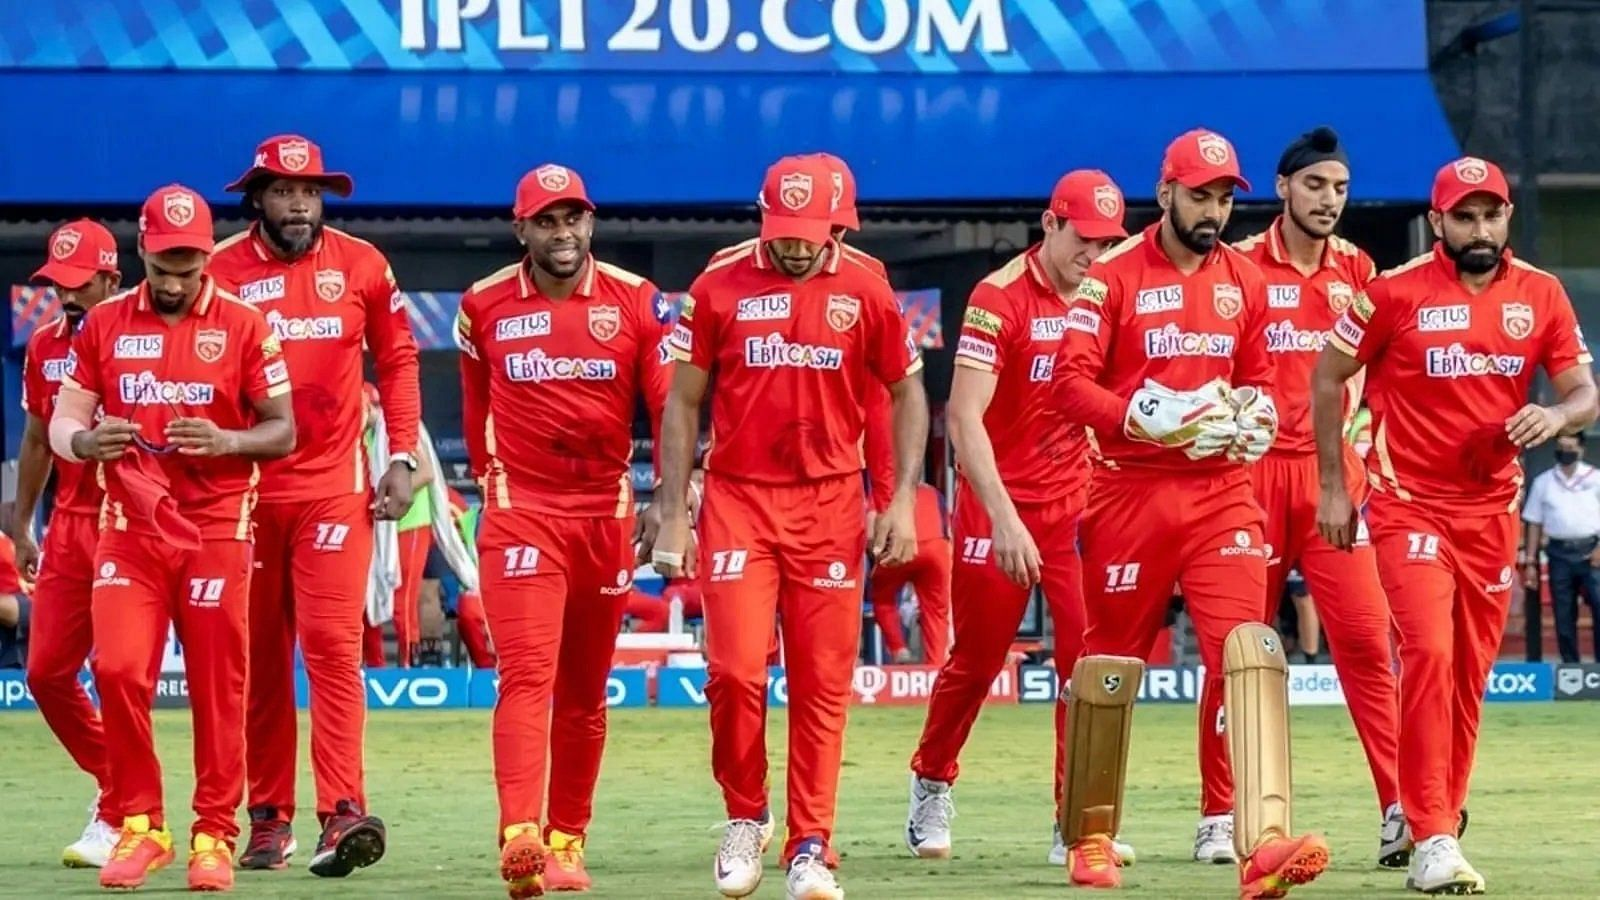 Punjab Kings have a chance to reach the playoffs of IPL 2021